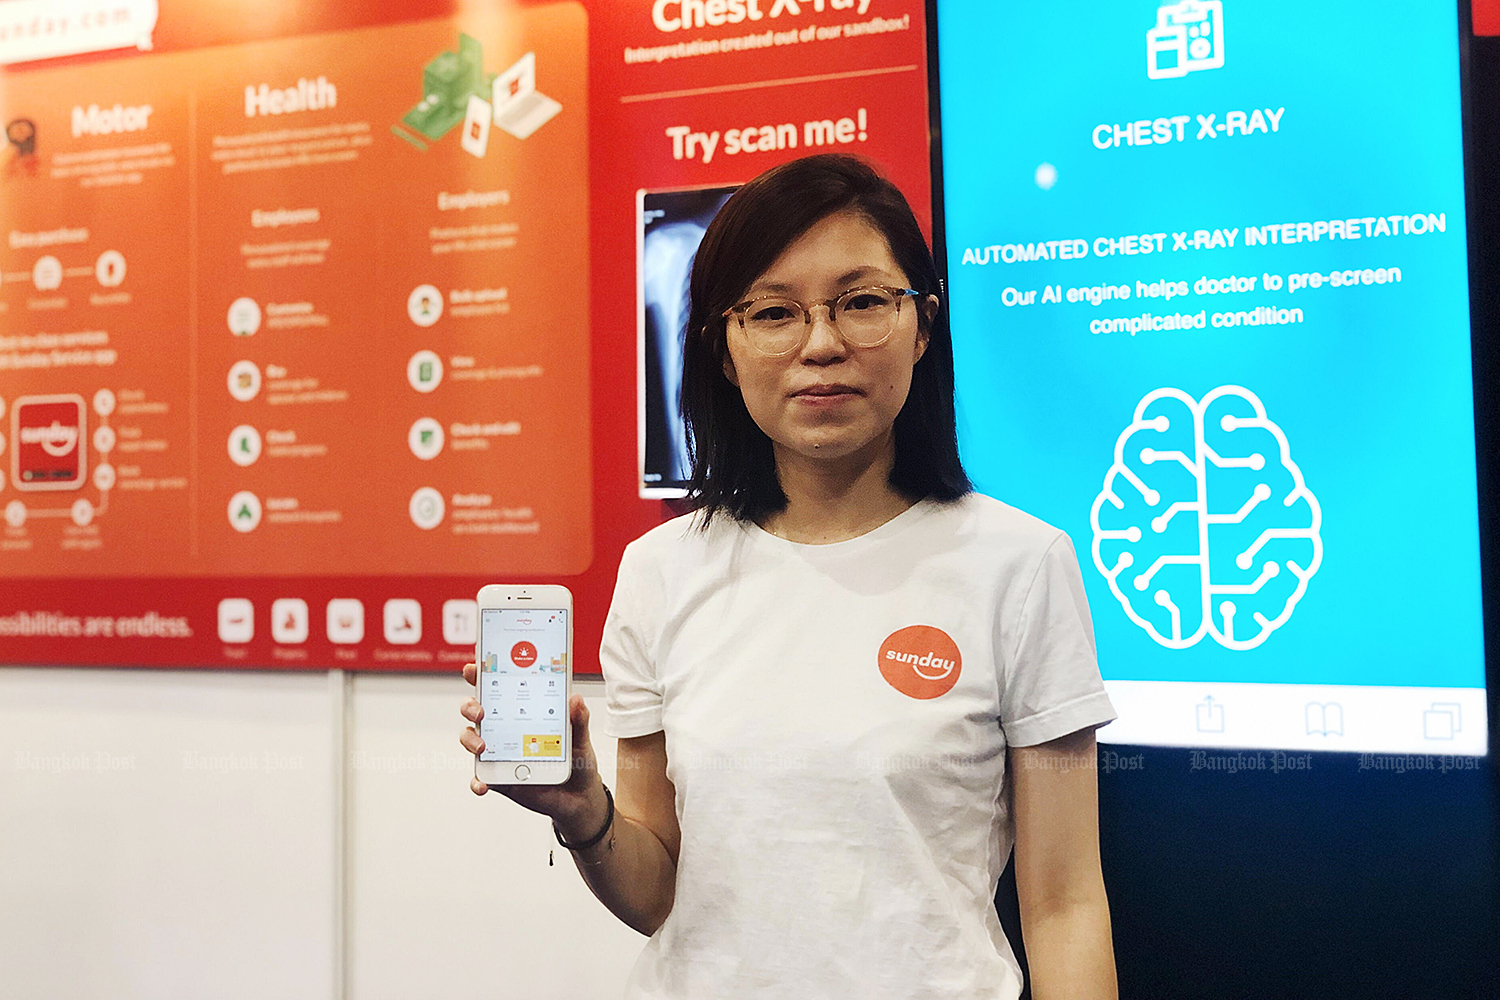 Ms Kua of Sunday Ins wants to eventually move her company into new verticals, similar to Amazon.com.